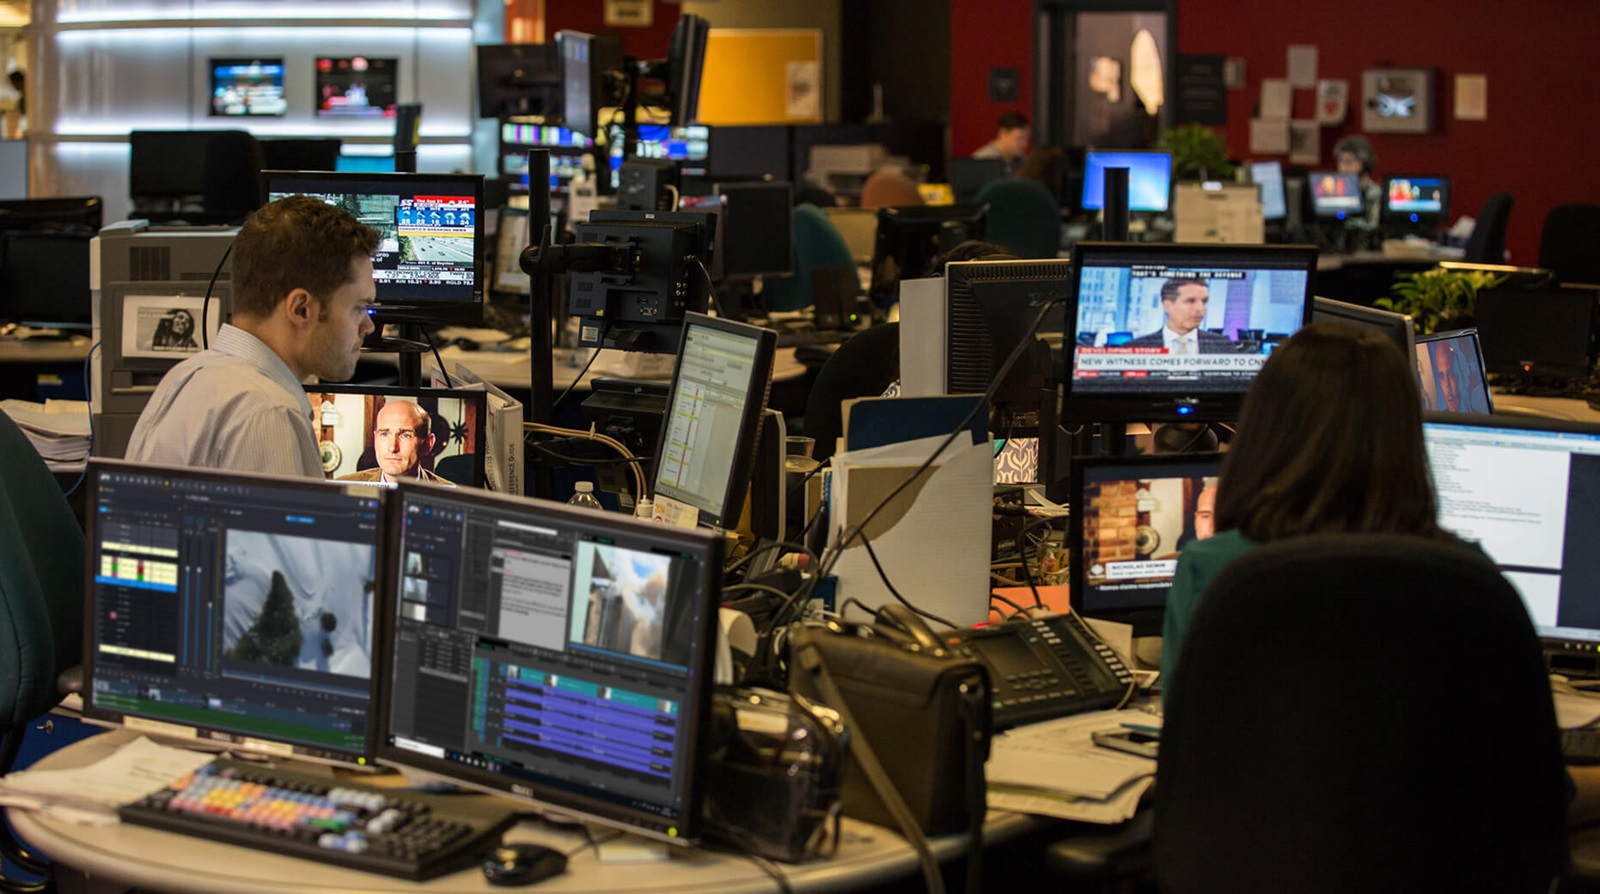 broadcast newsroom with multiple NLEs